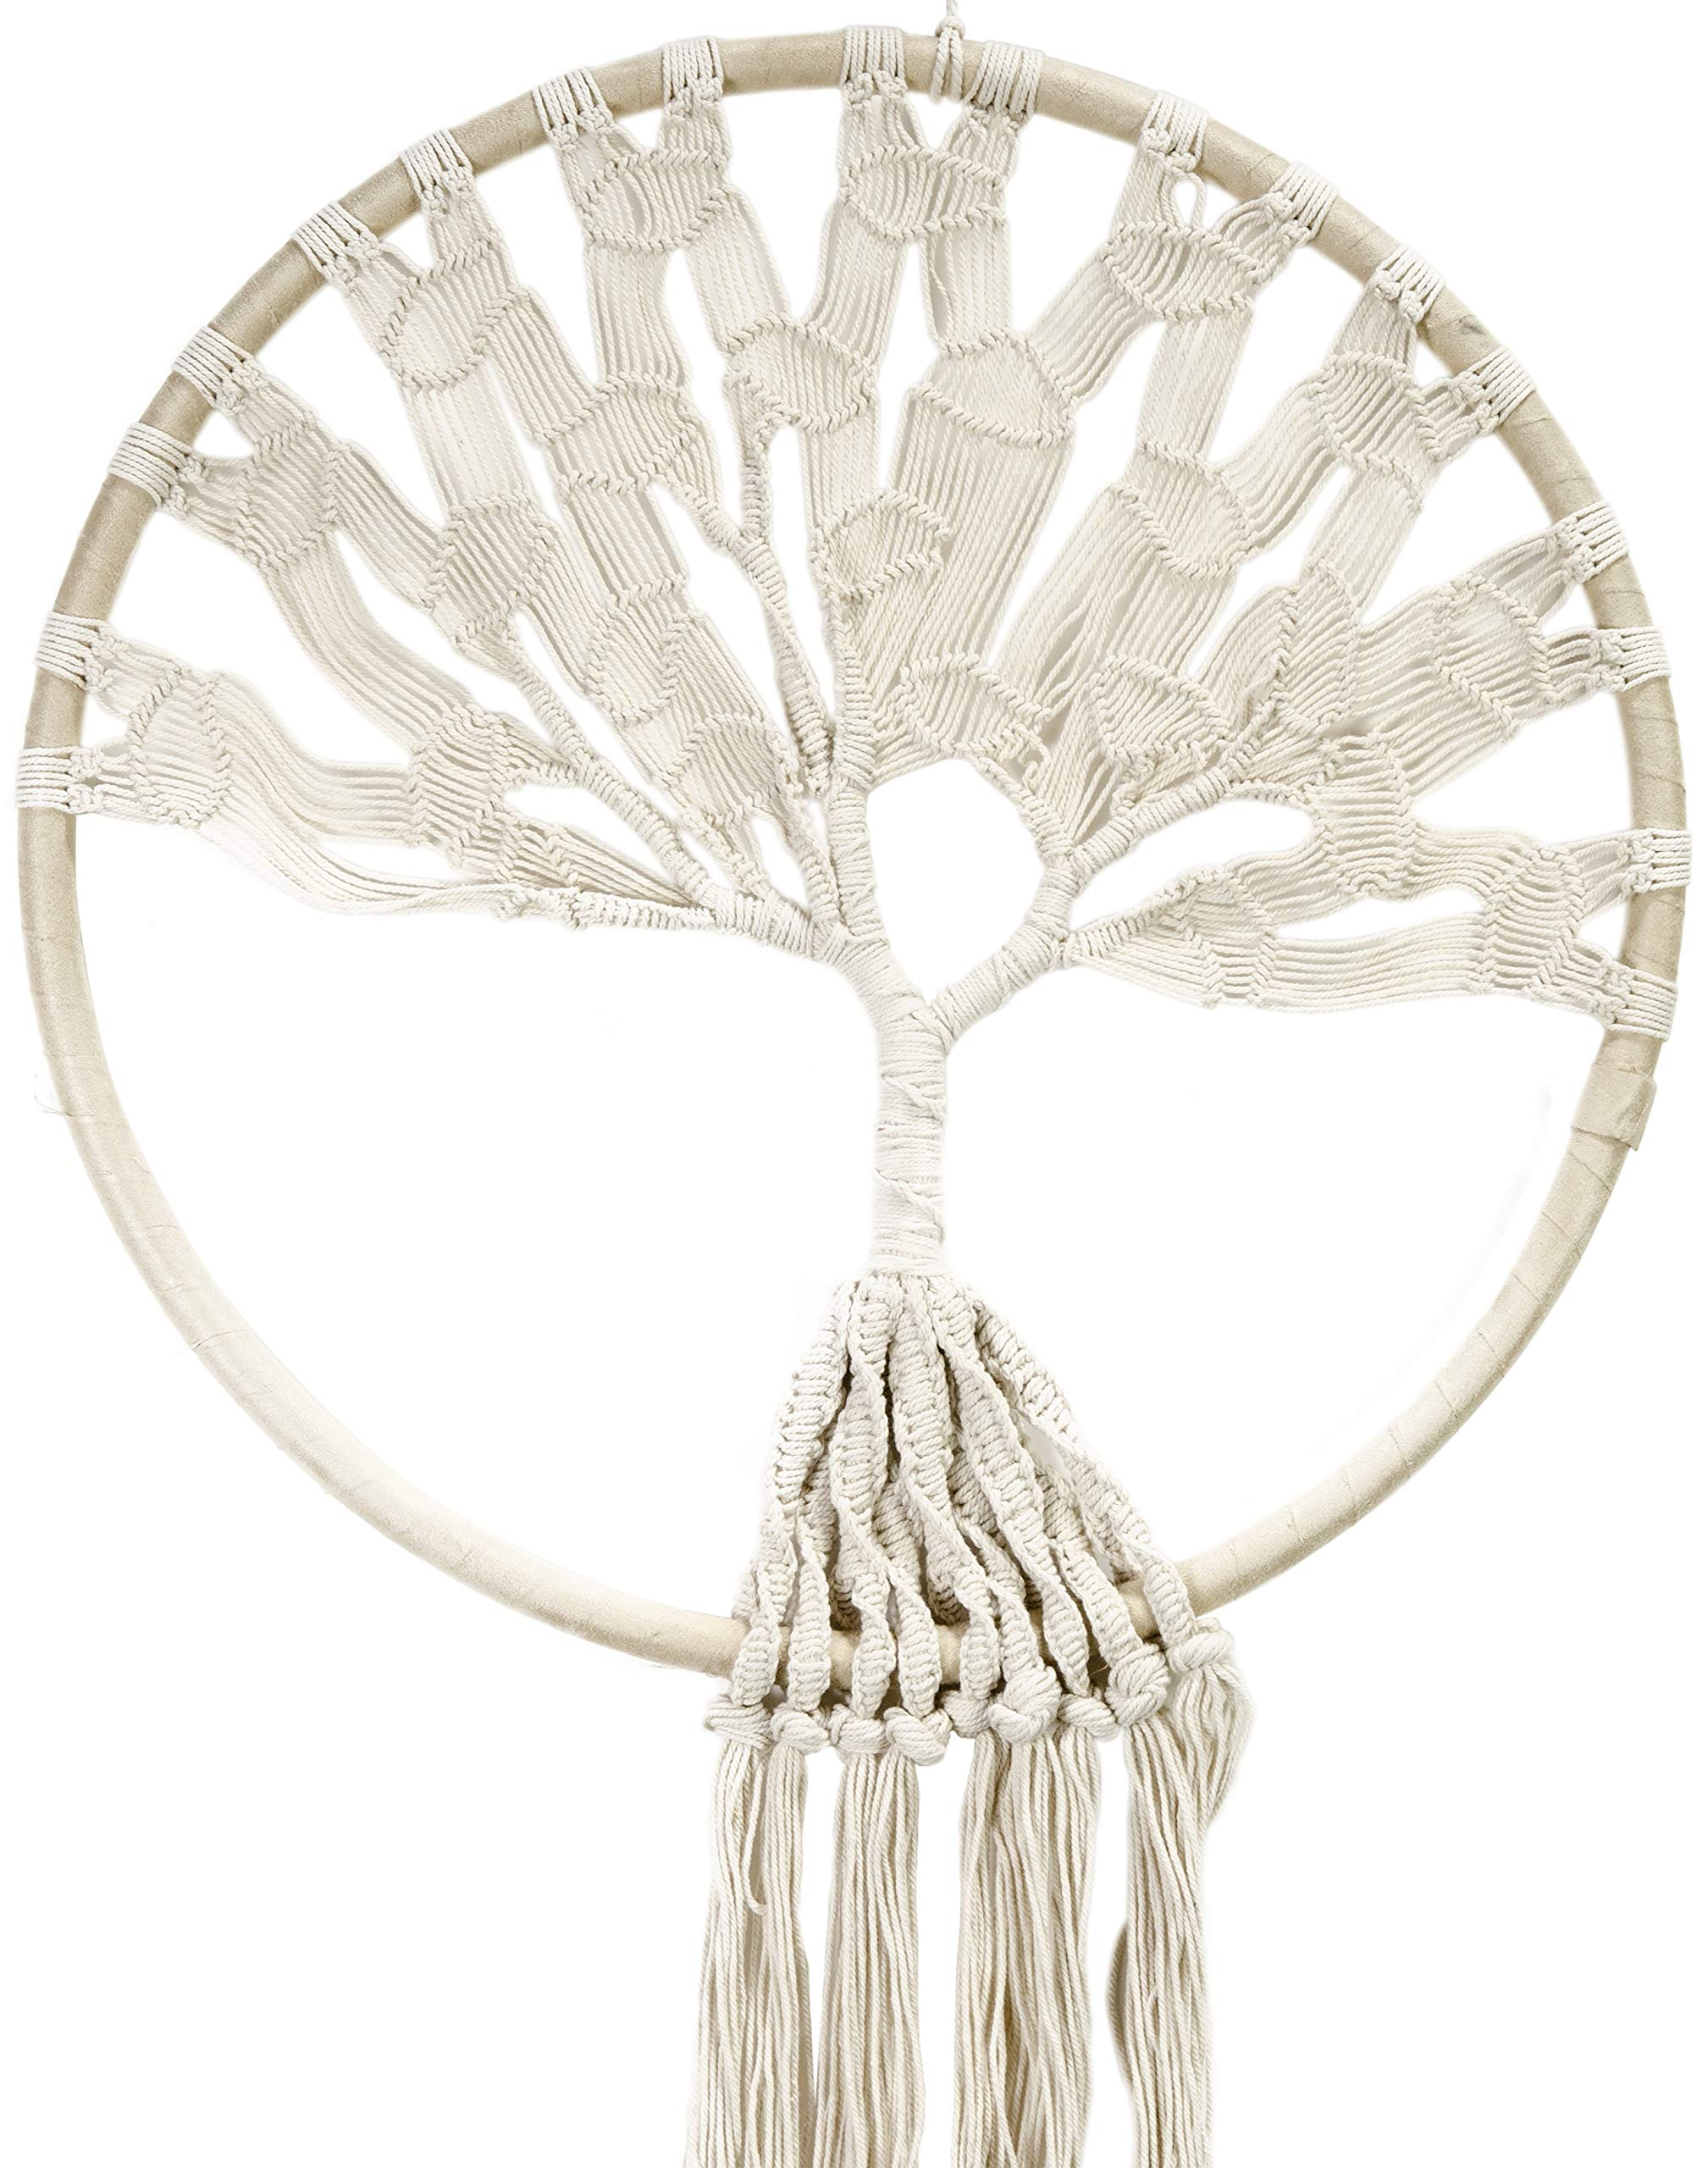 Macrame Hoop W/Tree of Life 51'' Wall Hanging- by Midwest Design Imports, Inc. (Image #1)